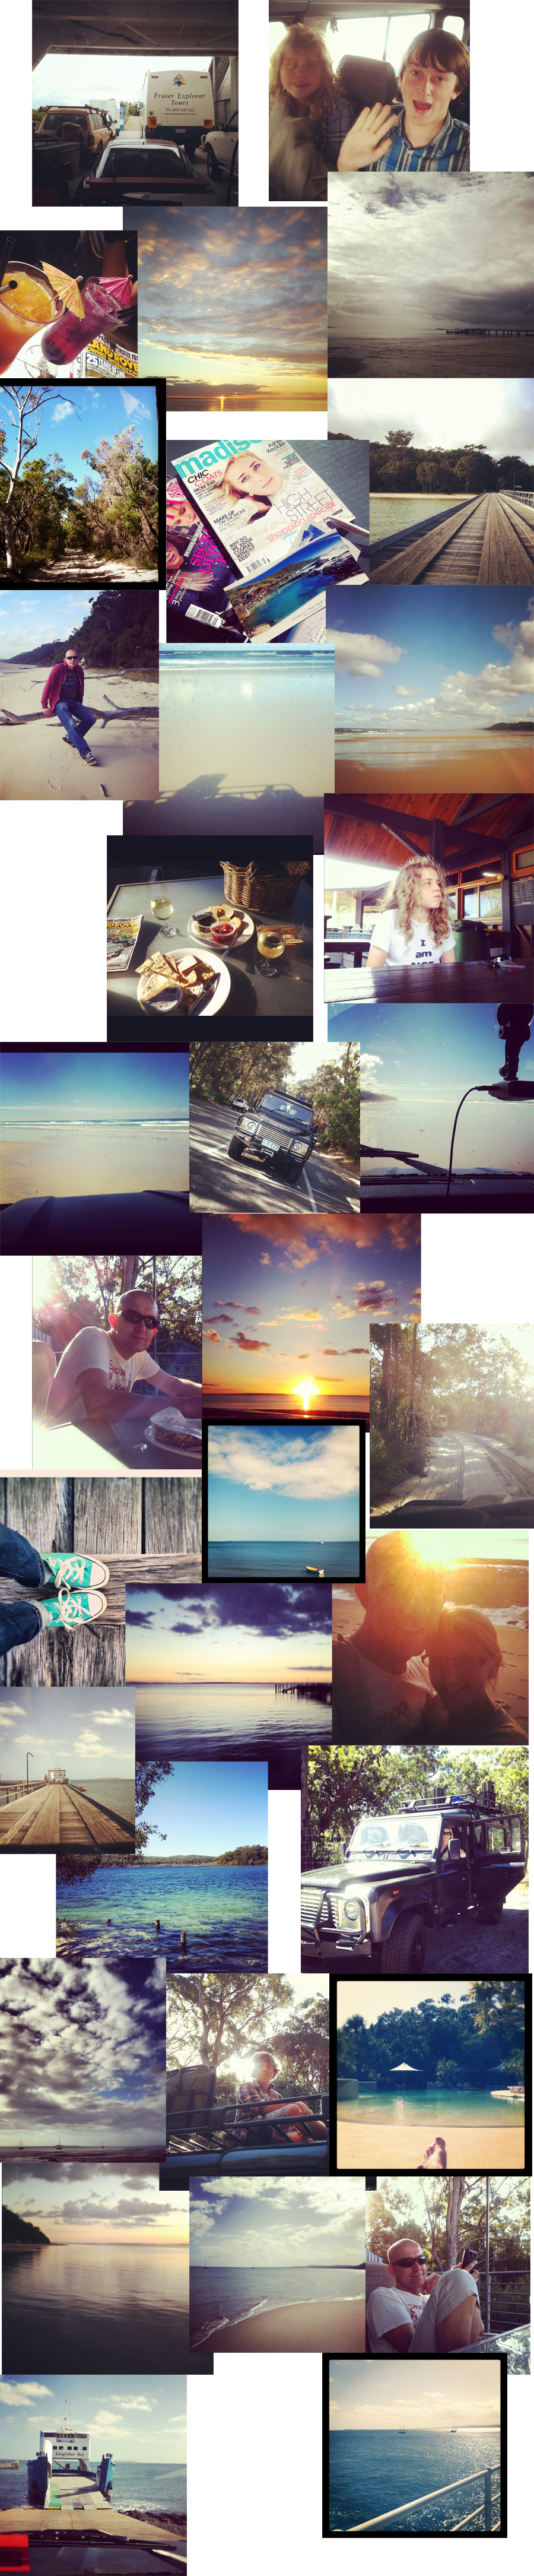 instagram holiday photos of fraser island kingfisher bay resort